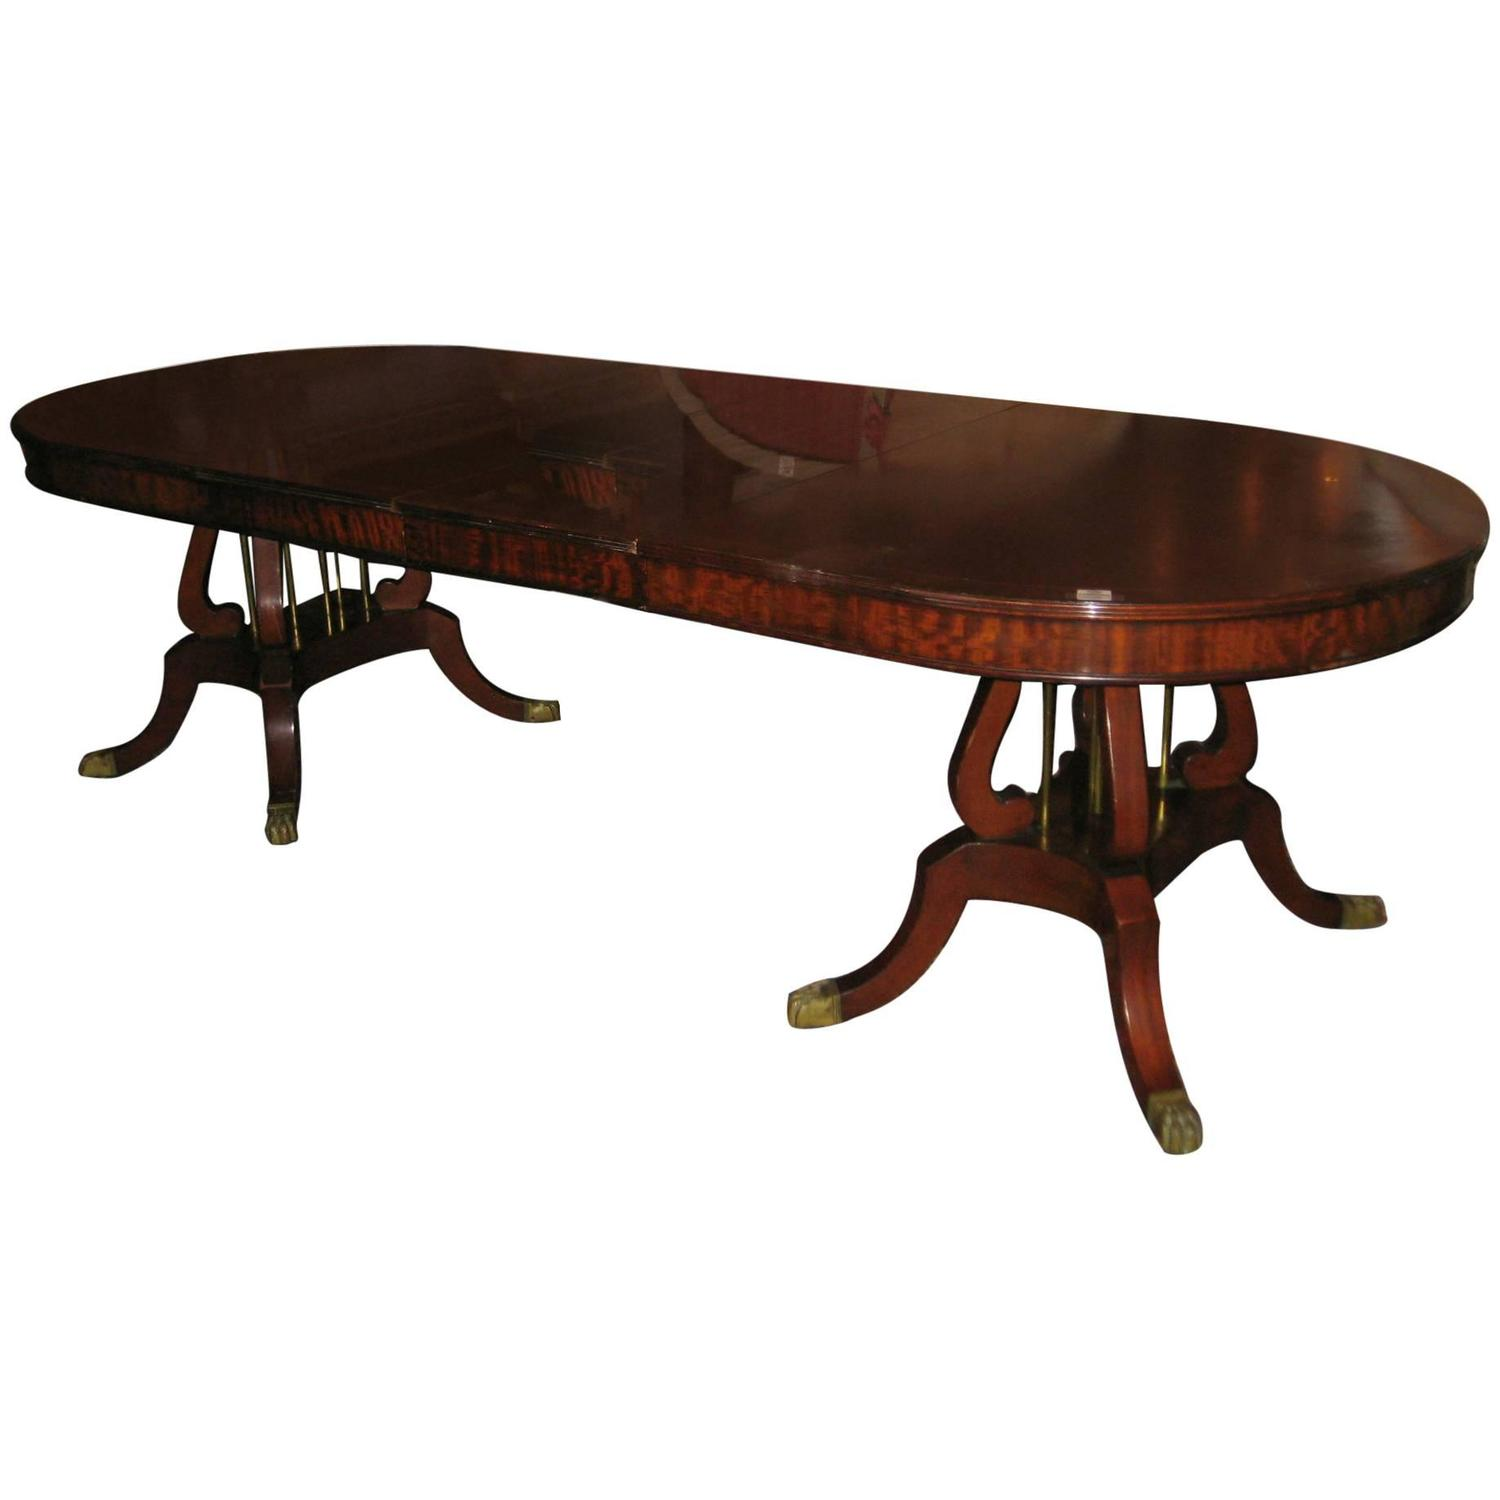 Federal style mahogany double pedestal dining table at 1stdibs for Pedestal dining table